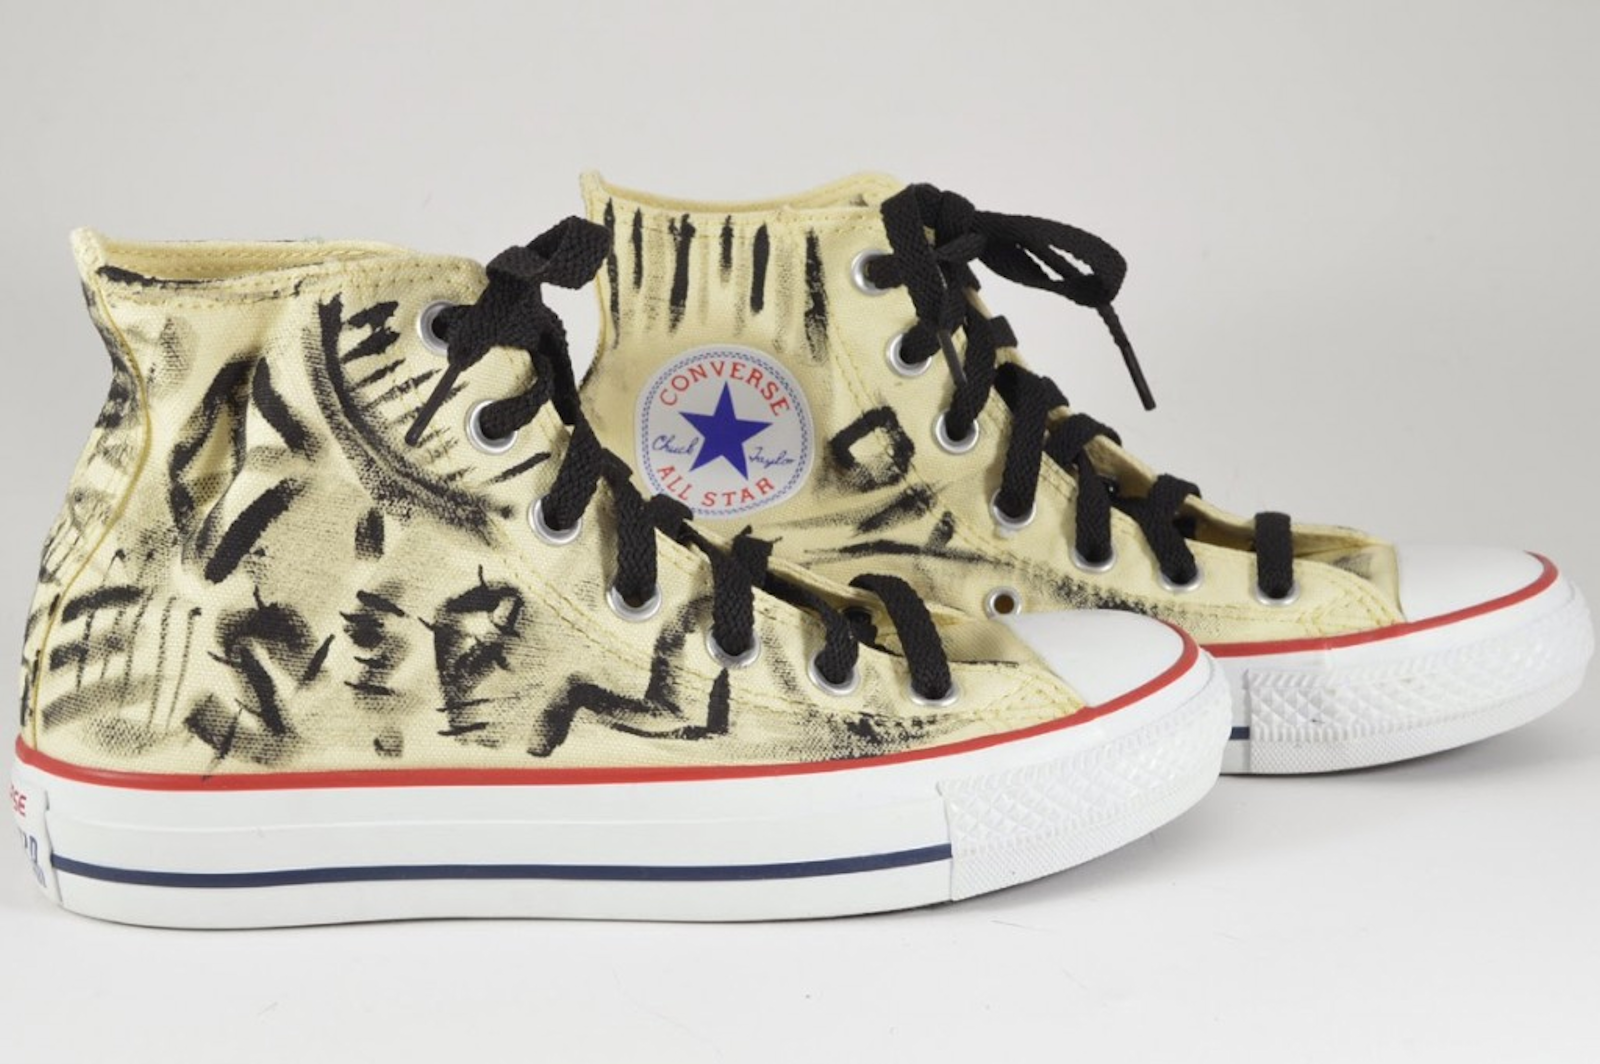 Graffiti Converse Hi Tops